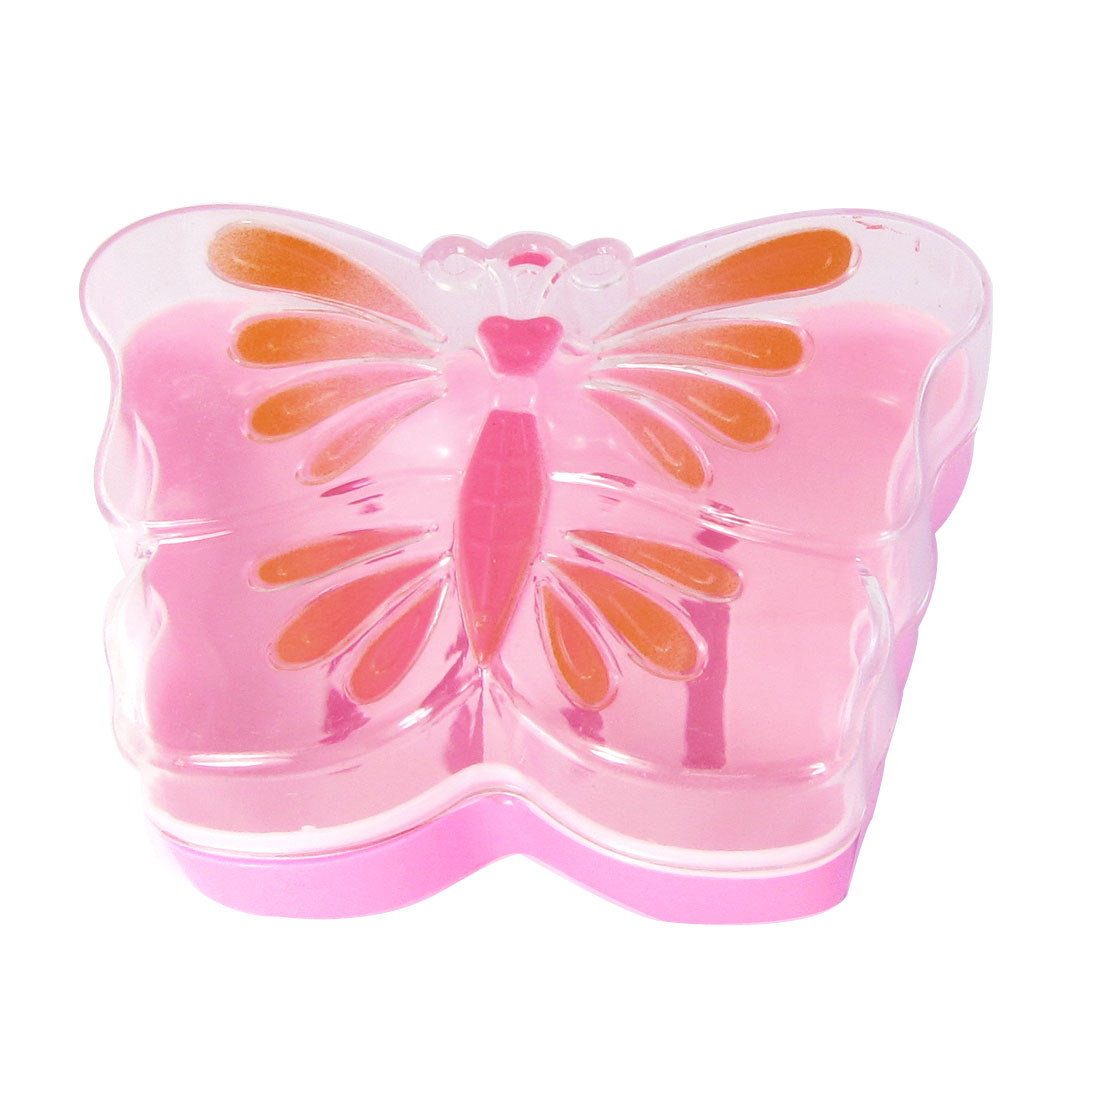 Home Pink Clear Plastic Cut Out Bottom Butterfly Shape Soap Case Box Holder Dish